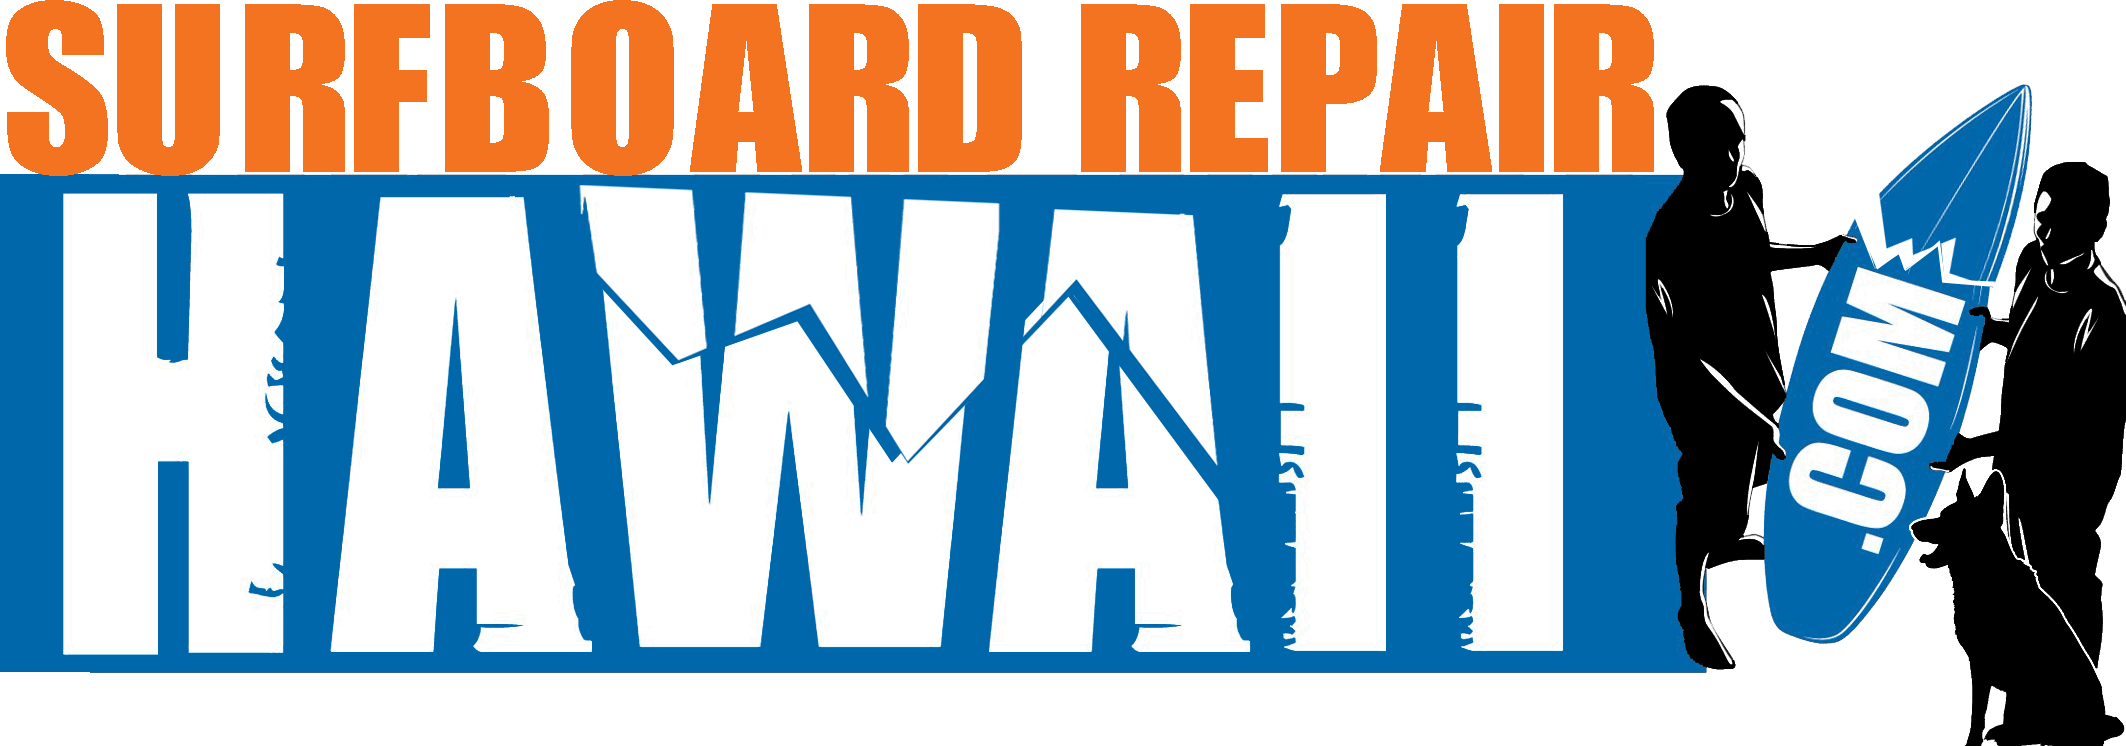 Surfboard Repair Hawaii